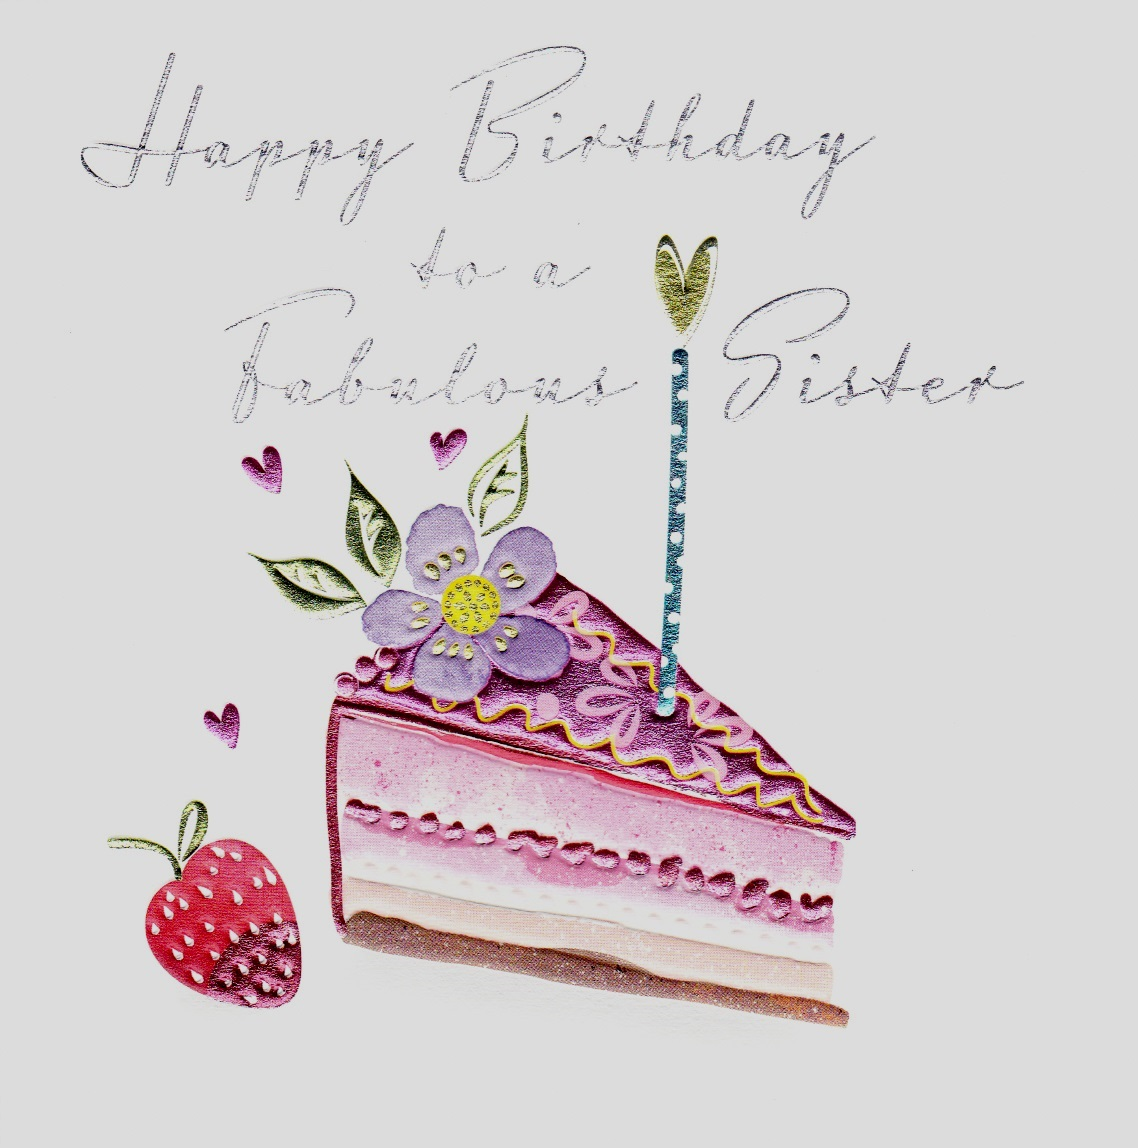 buy special sister birthday cards online at karenza paperie slice of birthday cake and candle sister card from sibling brother sis